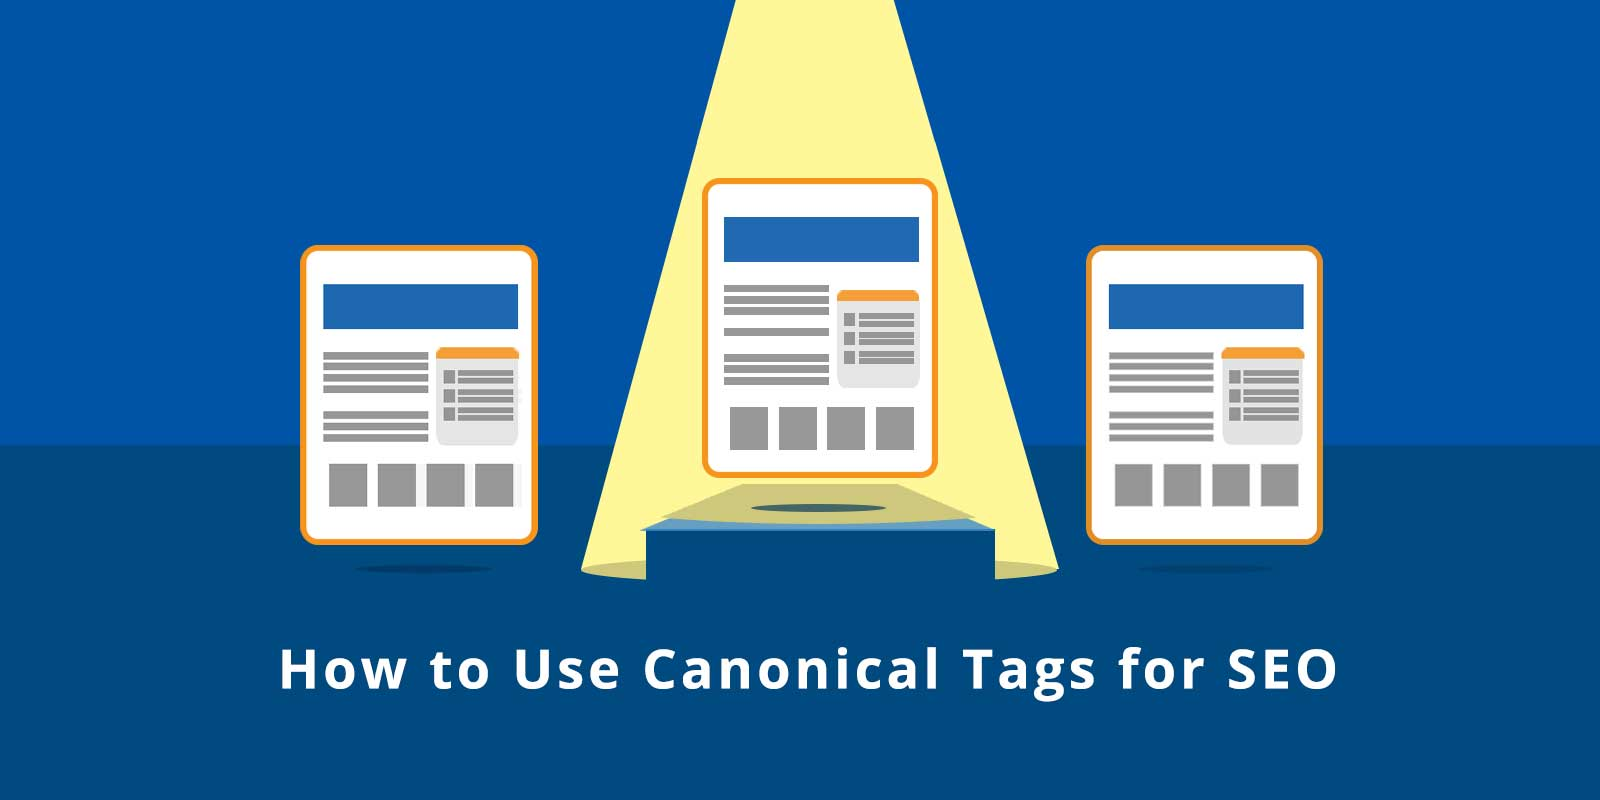 rel-canonical-tag-seo